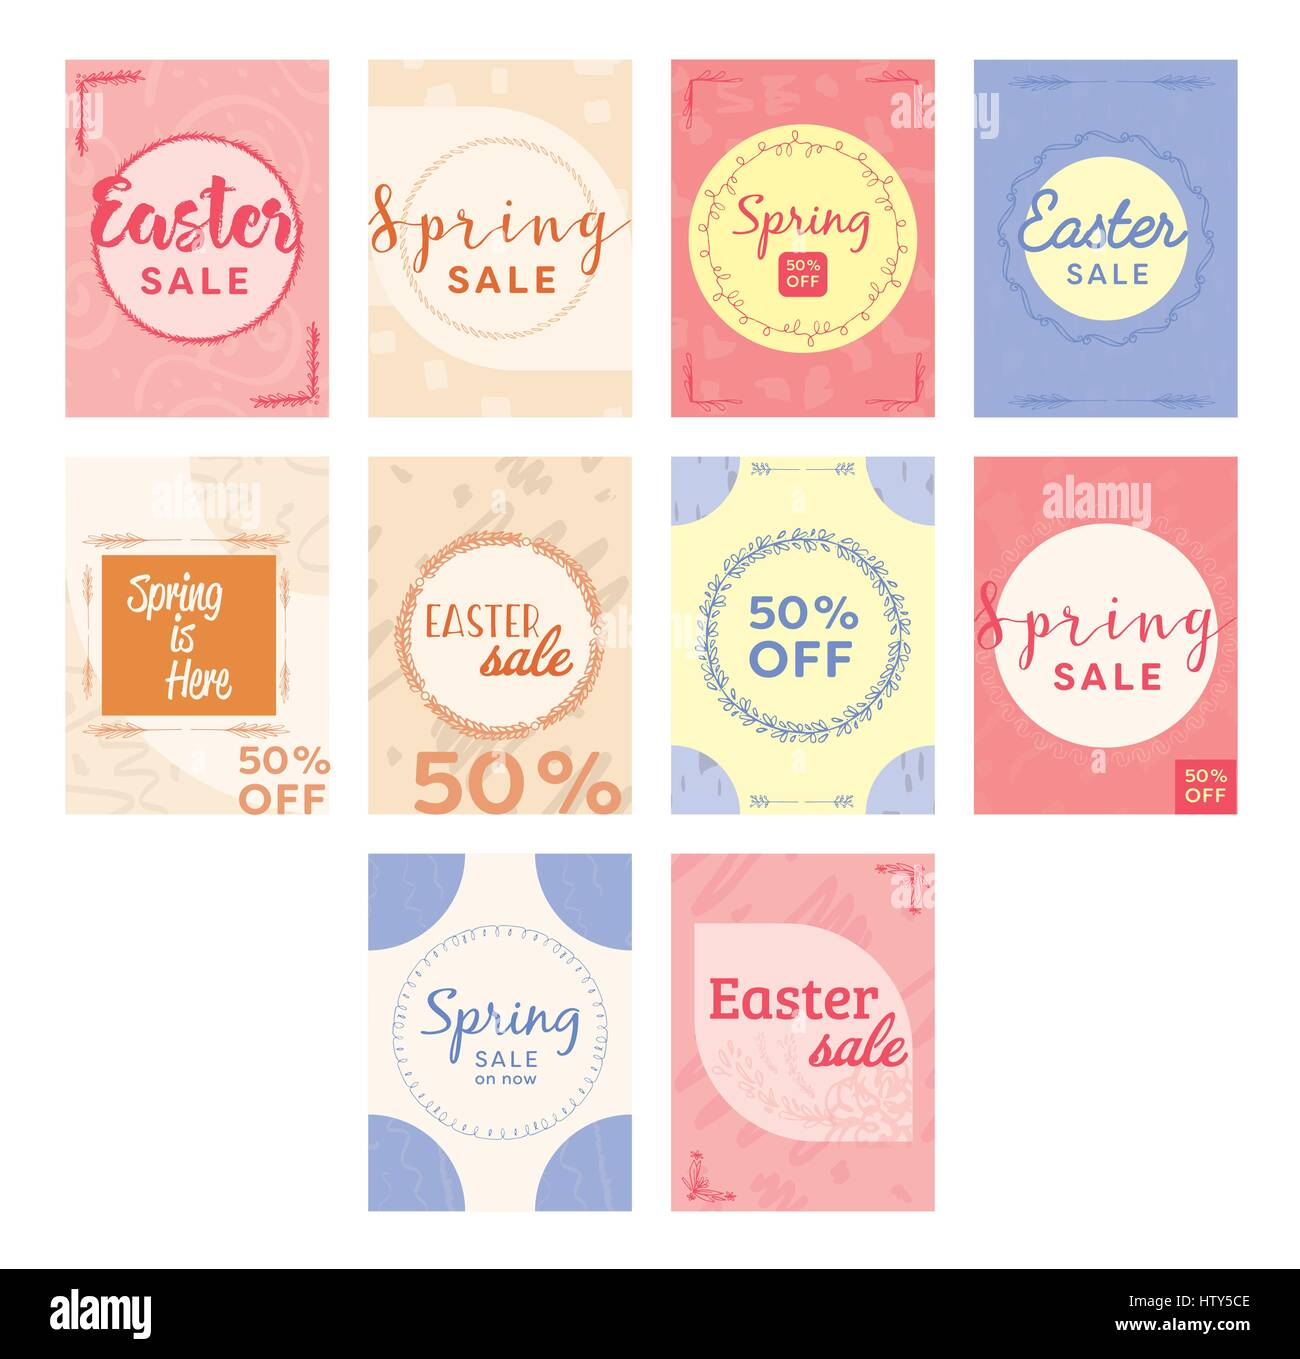 Vector icon set of greeting cards with easter and spring messages vector icon set of greeting cards with easter and spring messages against white background m4hsunfo